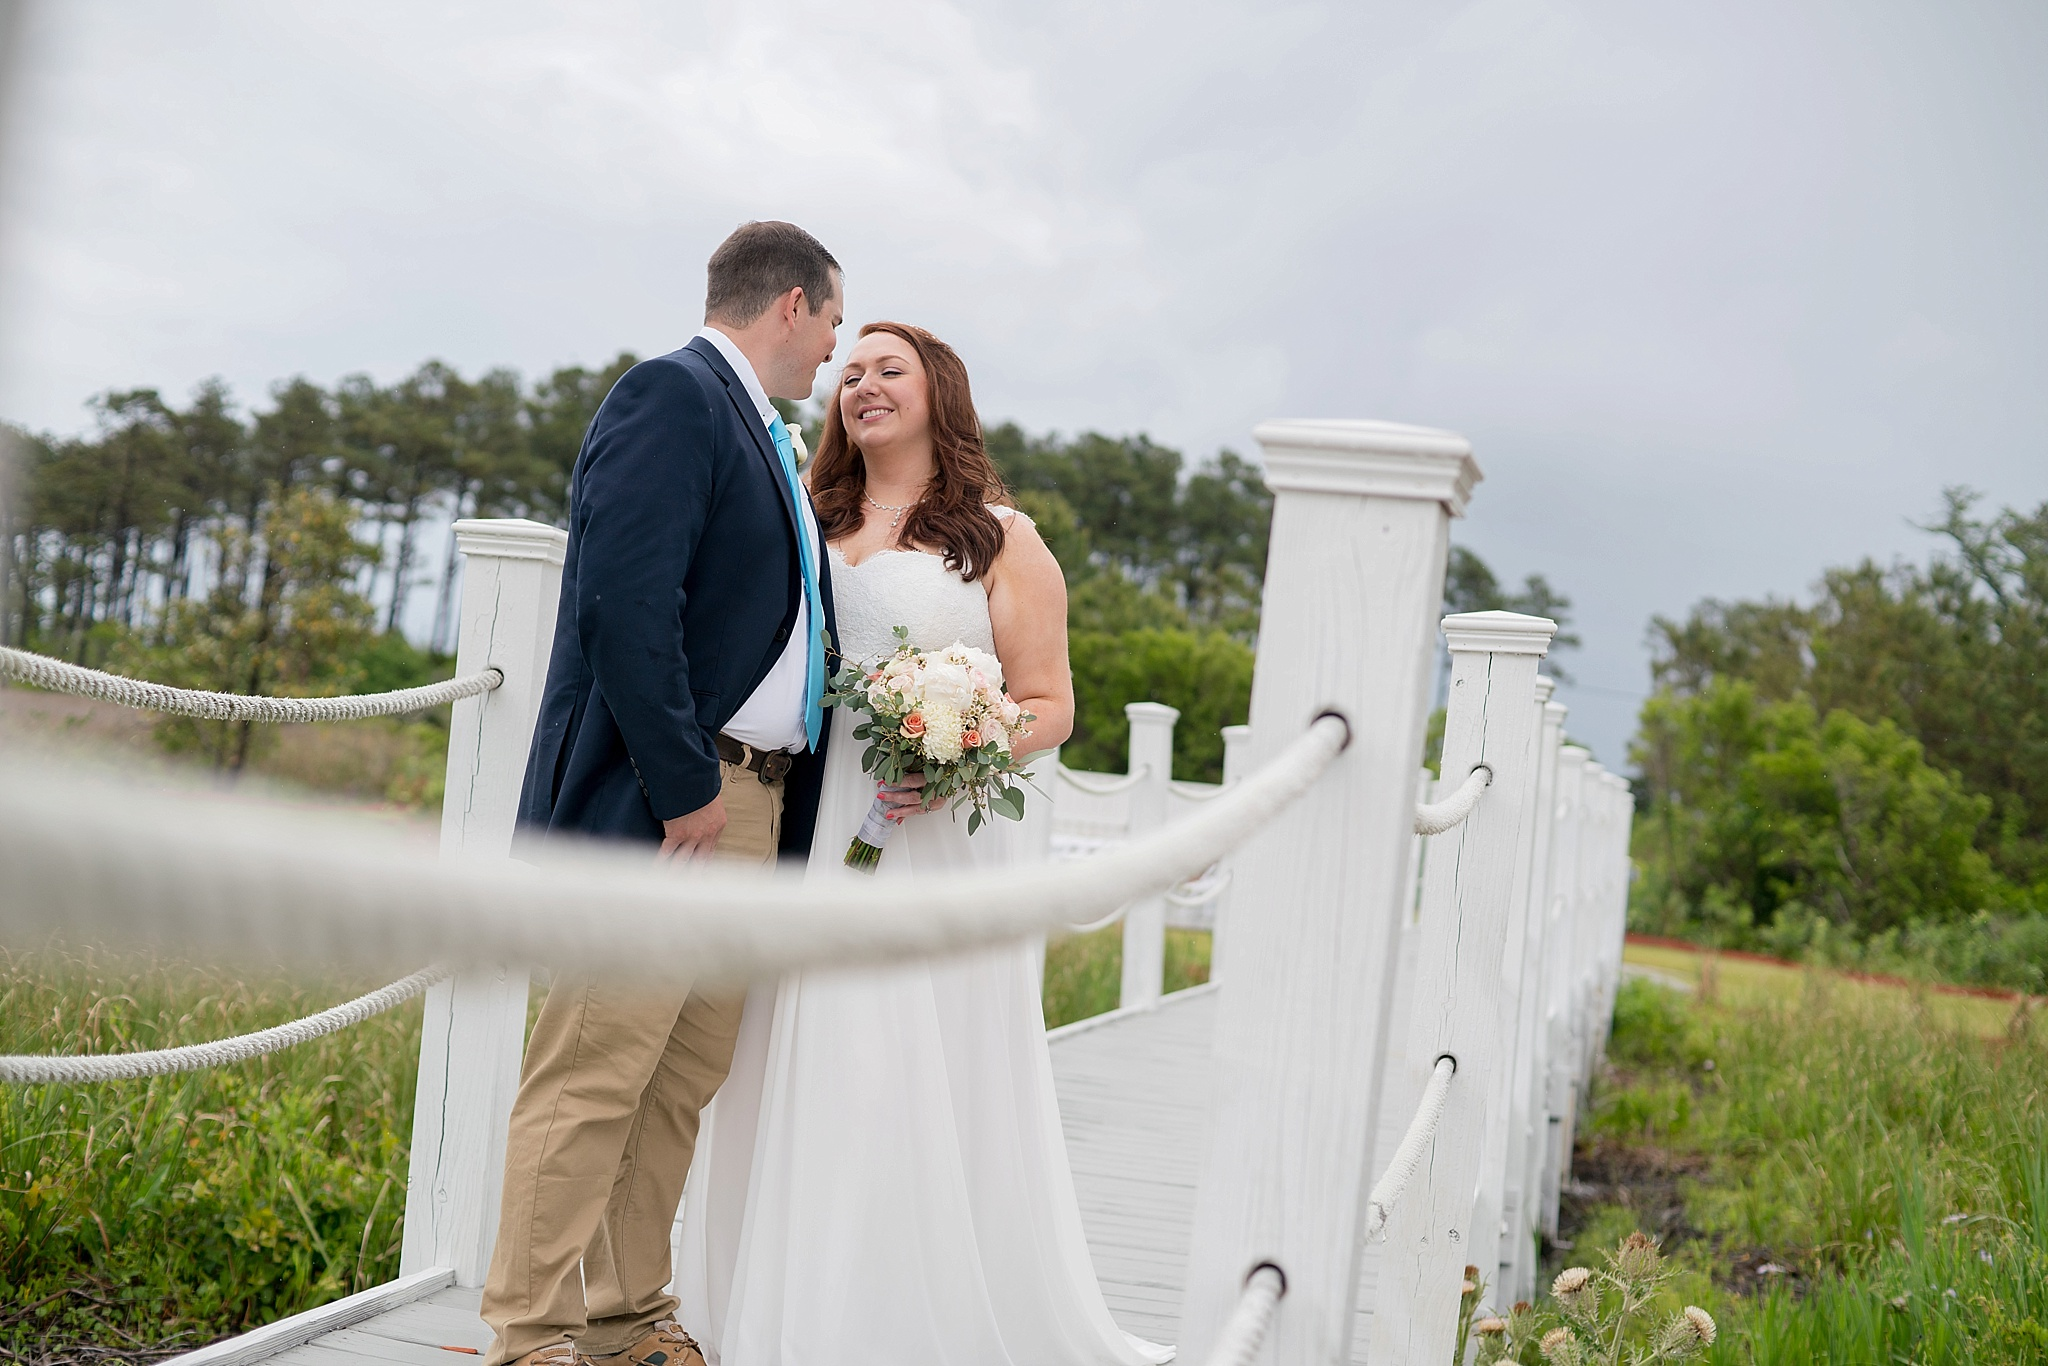 Manteo-NC-Wedding-Photographer-132.jpg